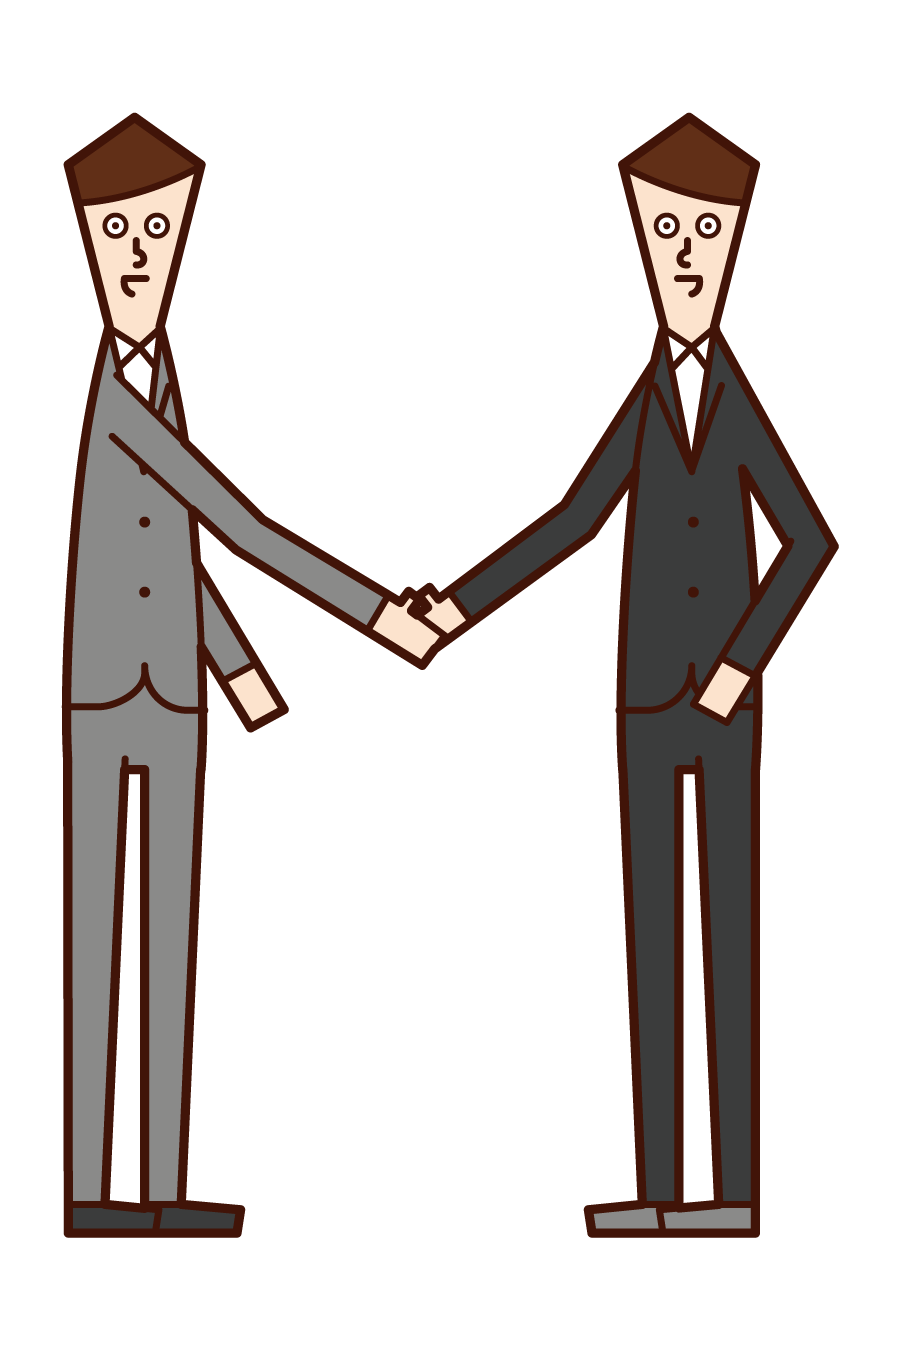 Illustration of a man shaking hands